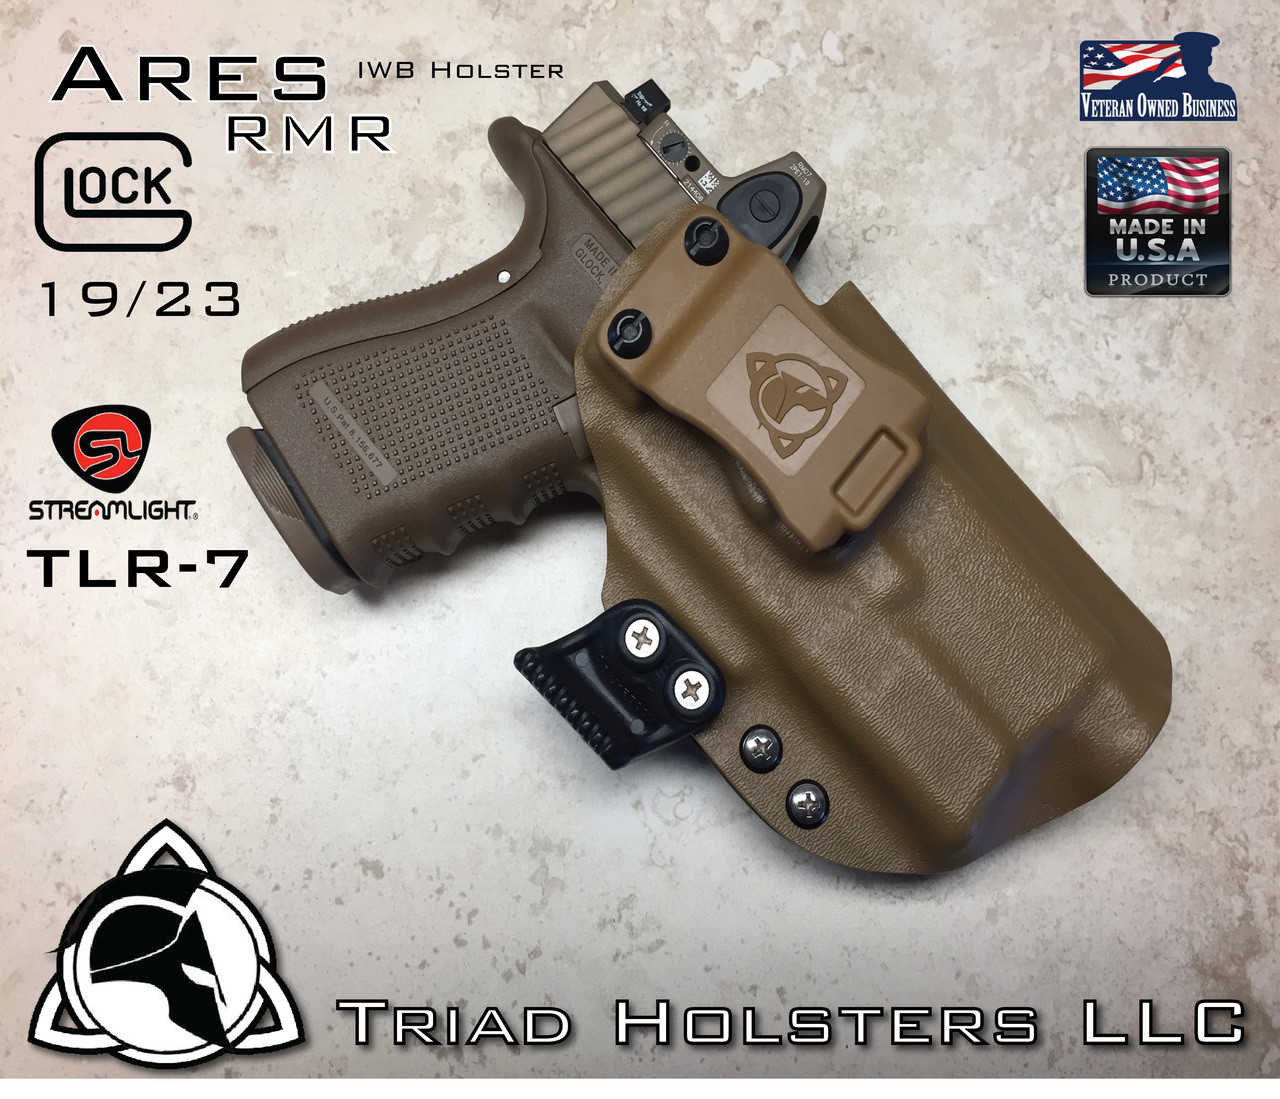 Kydex Holster Glock 19/23 and Streamlight TLR-7 with RMR Ares IWB Inside  the Waistband